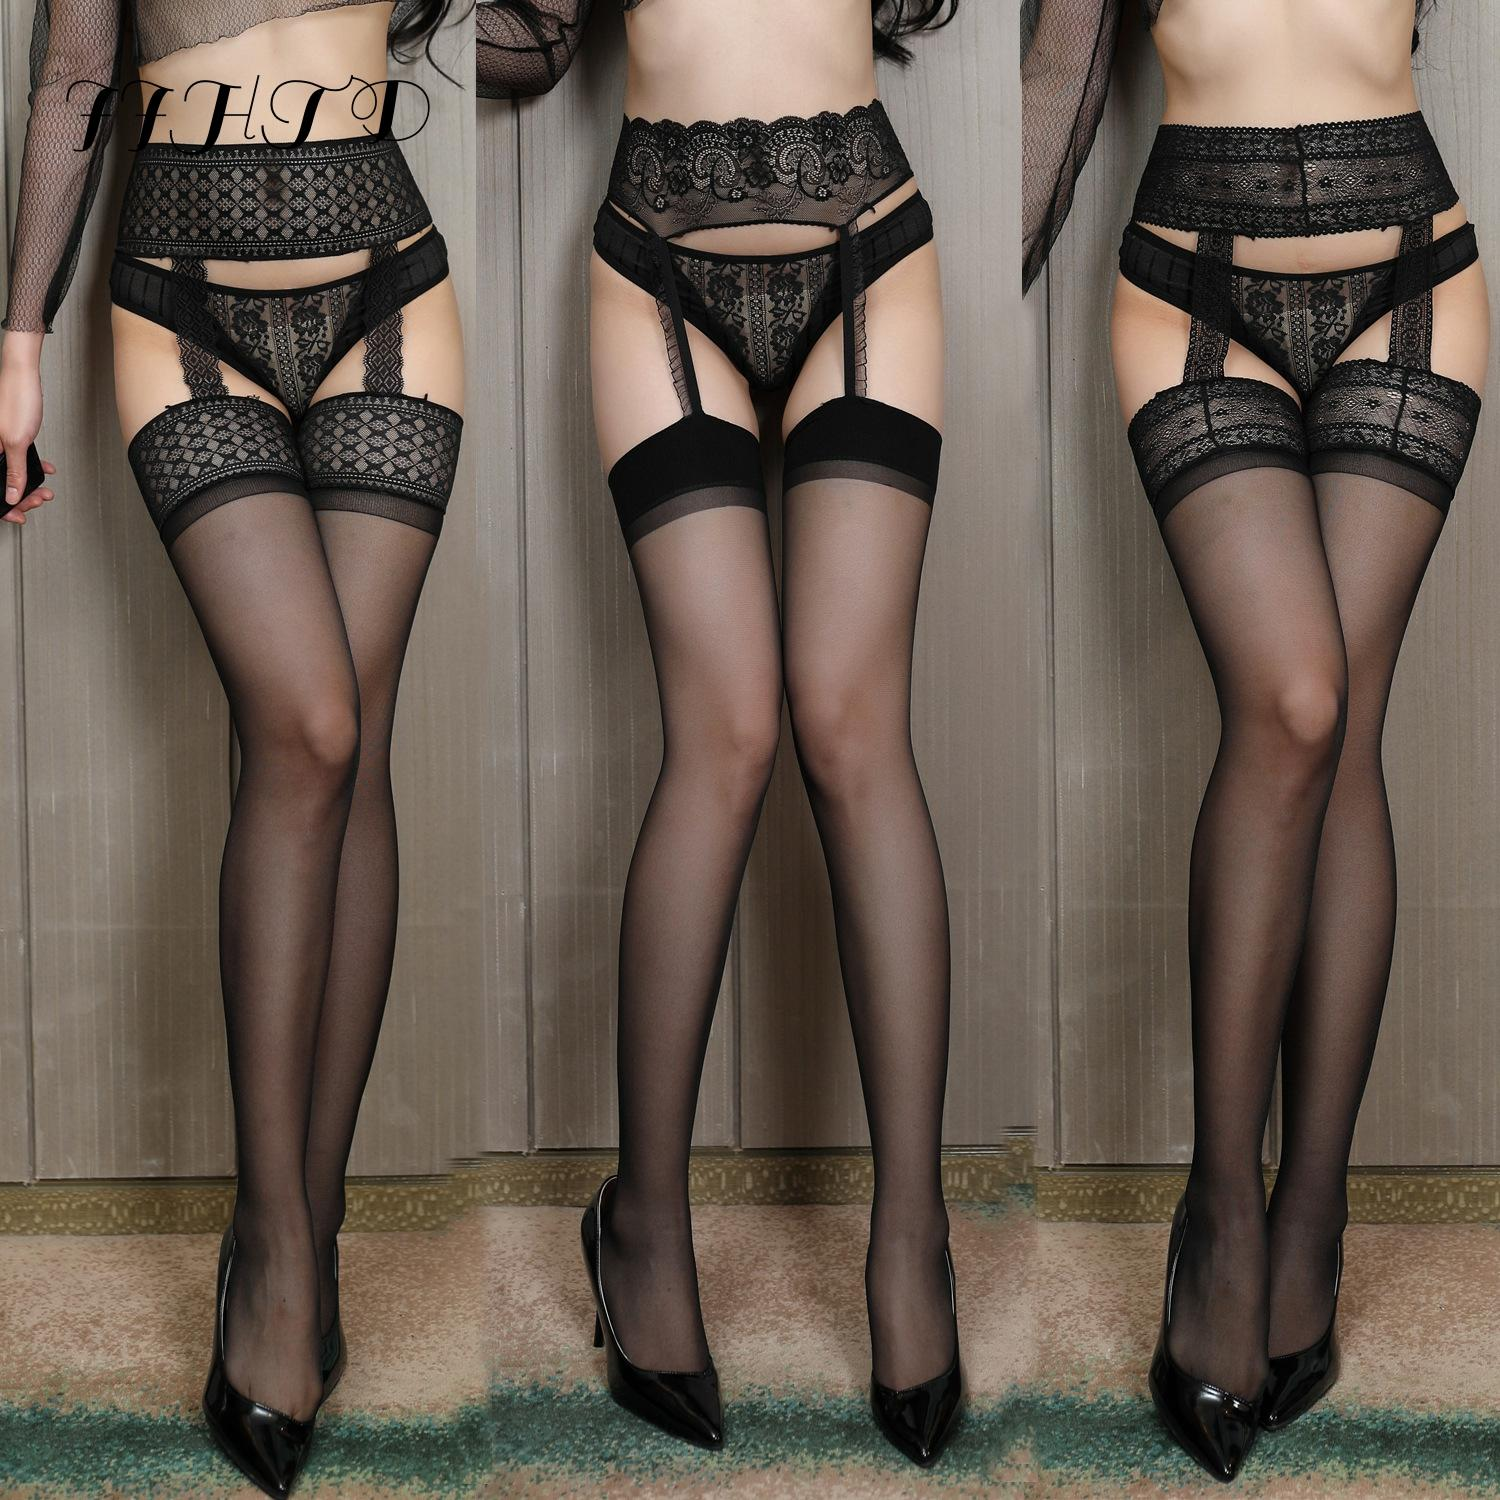 Sexy Stocking Lace Soft Top Thigh-Highs Stockings + Suspender Garter Belt Stocking Lingerie And Women's Sexy Lace Stockings